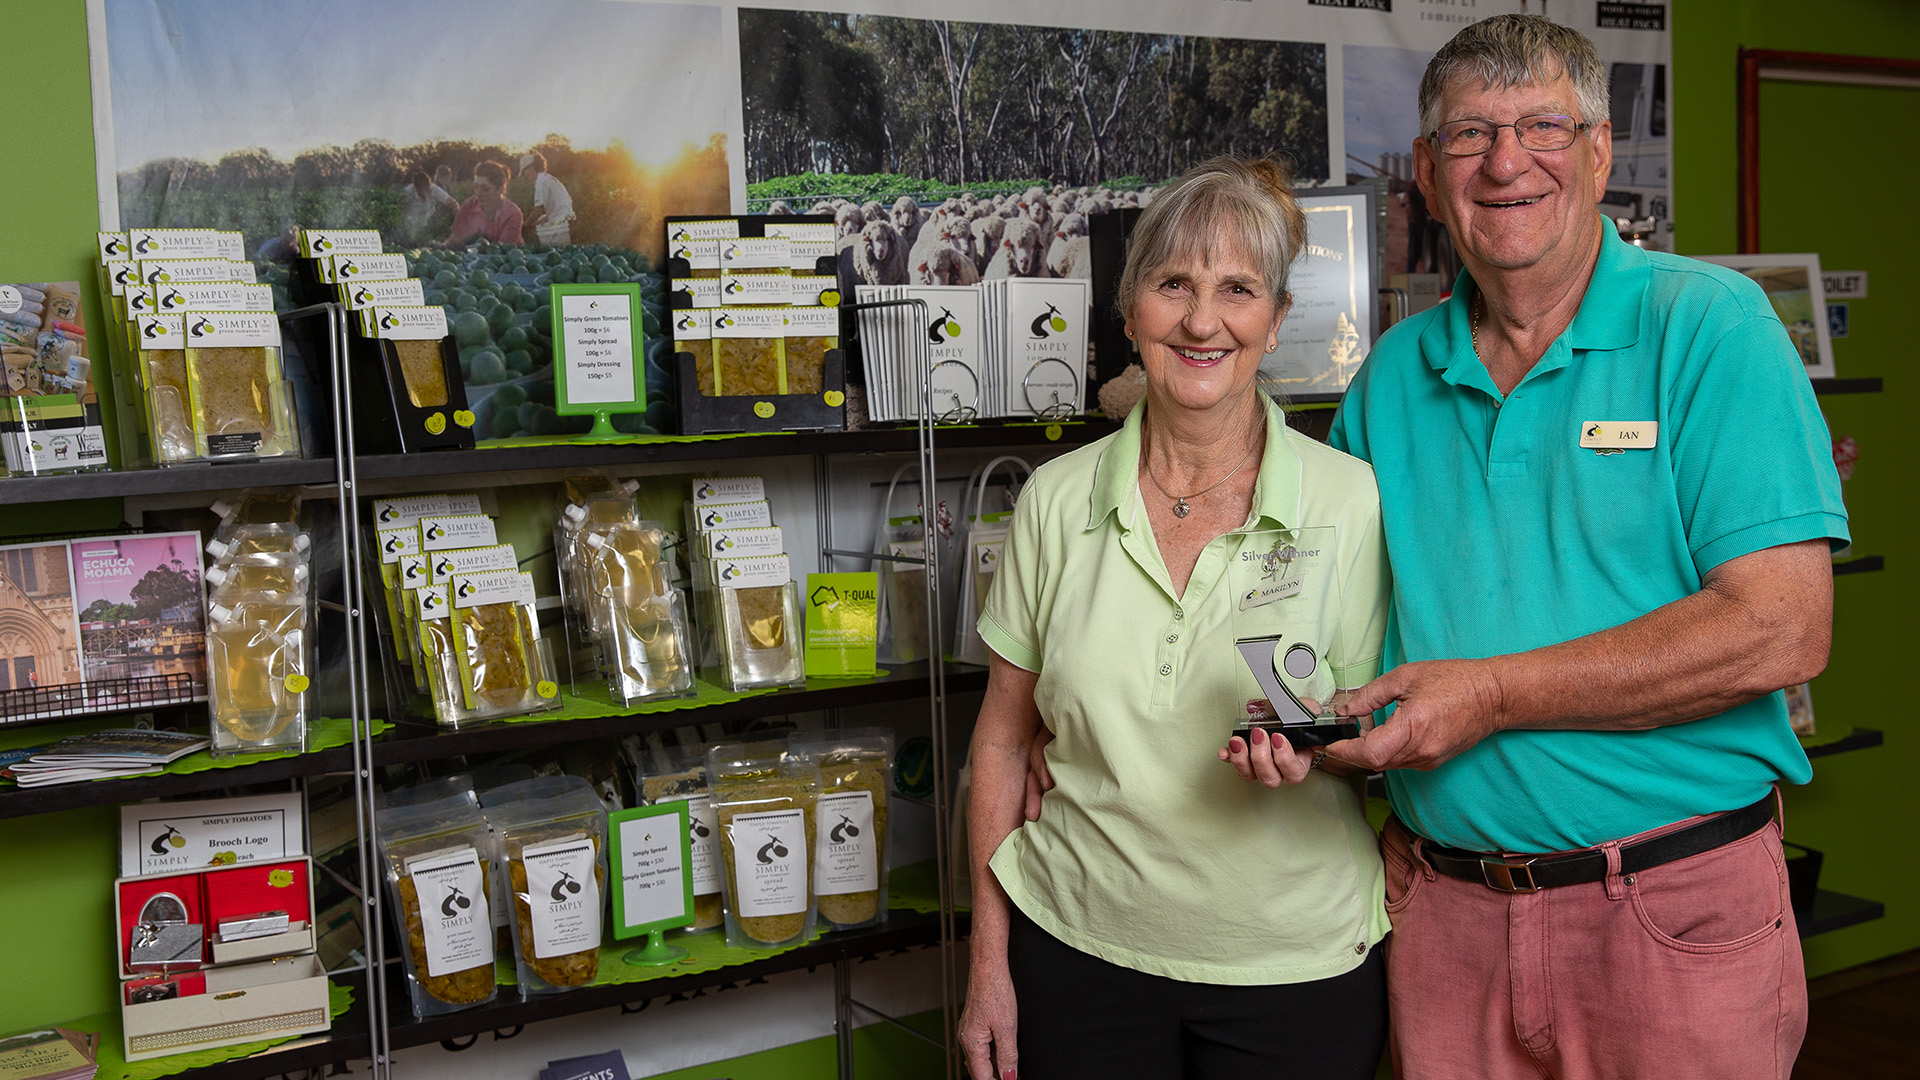 Discover award winning local produce at Simply Tomatoes